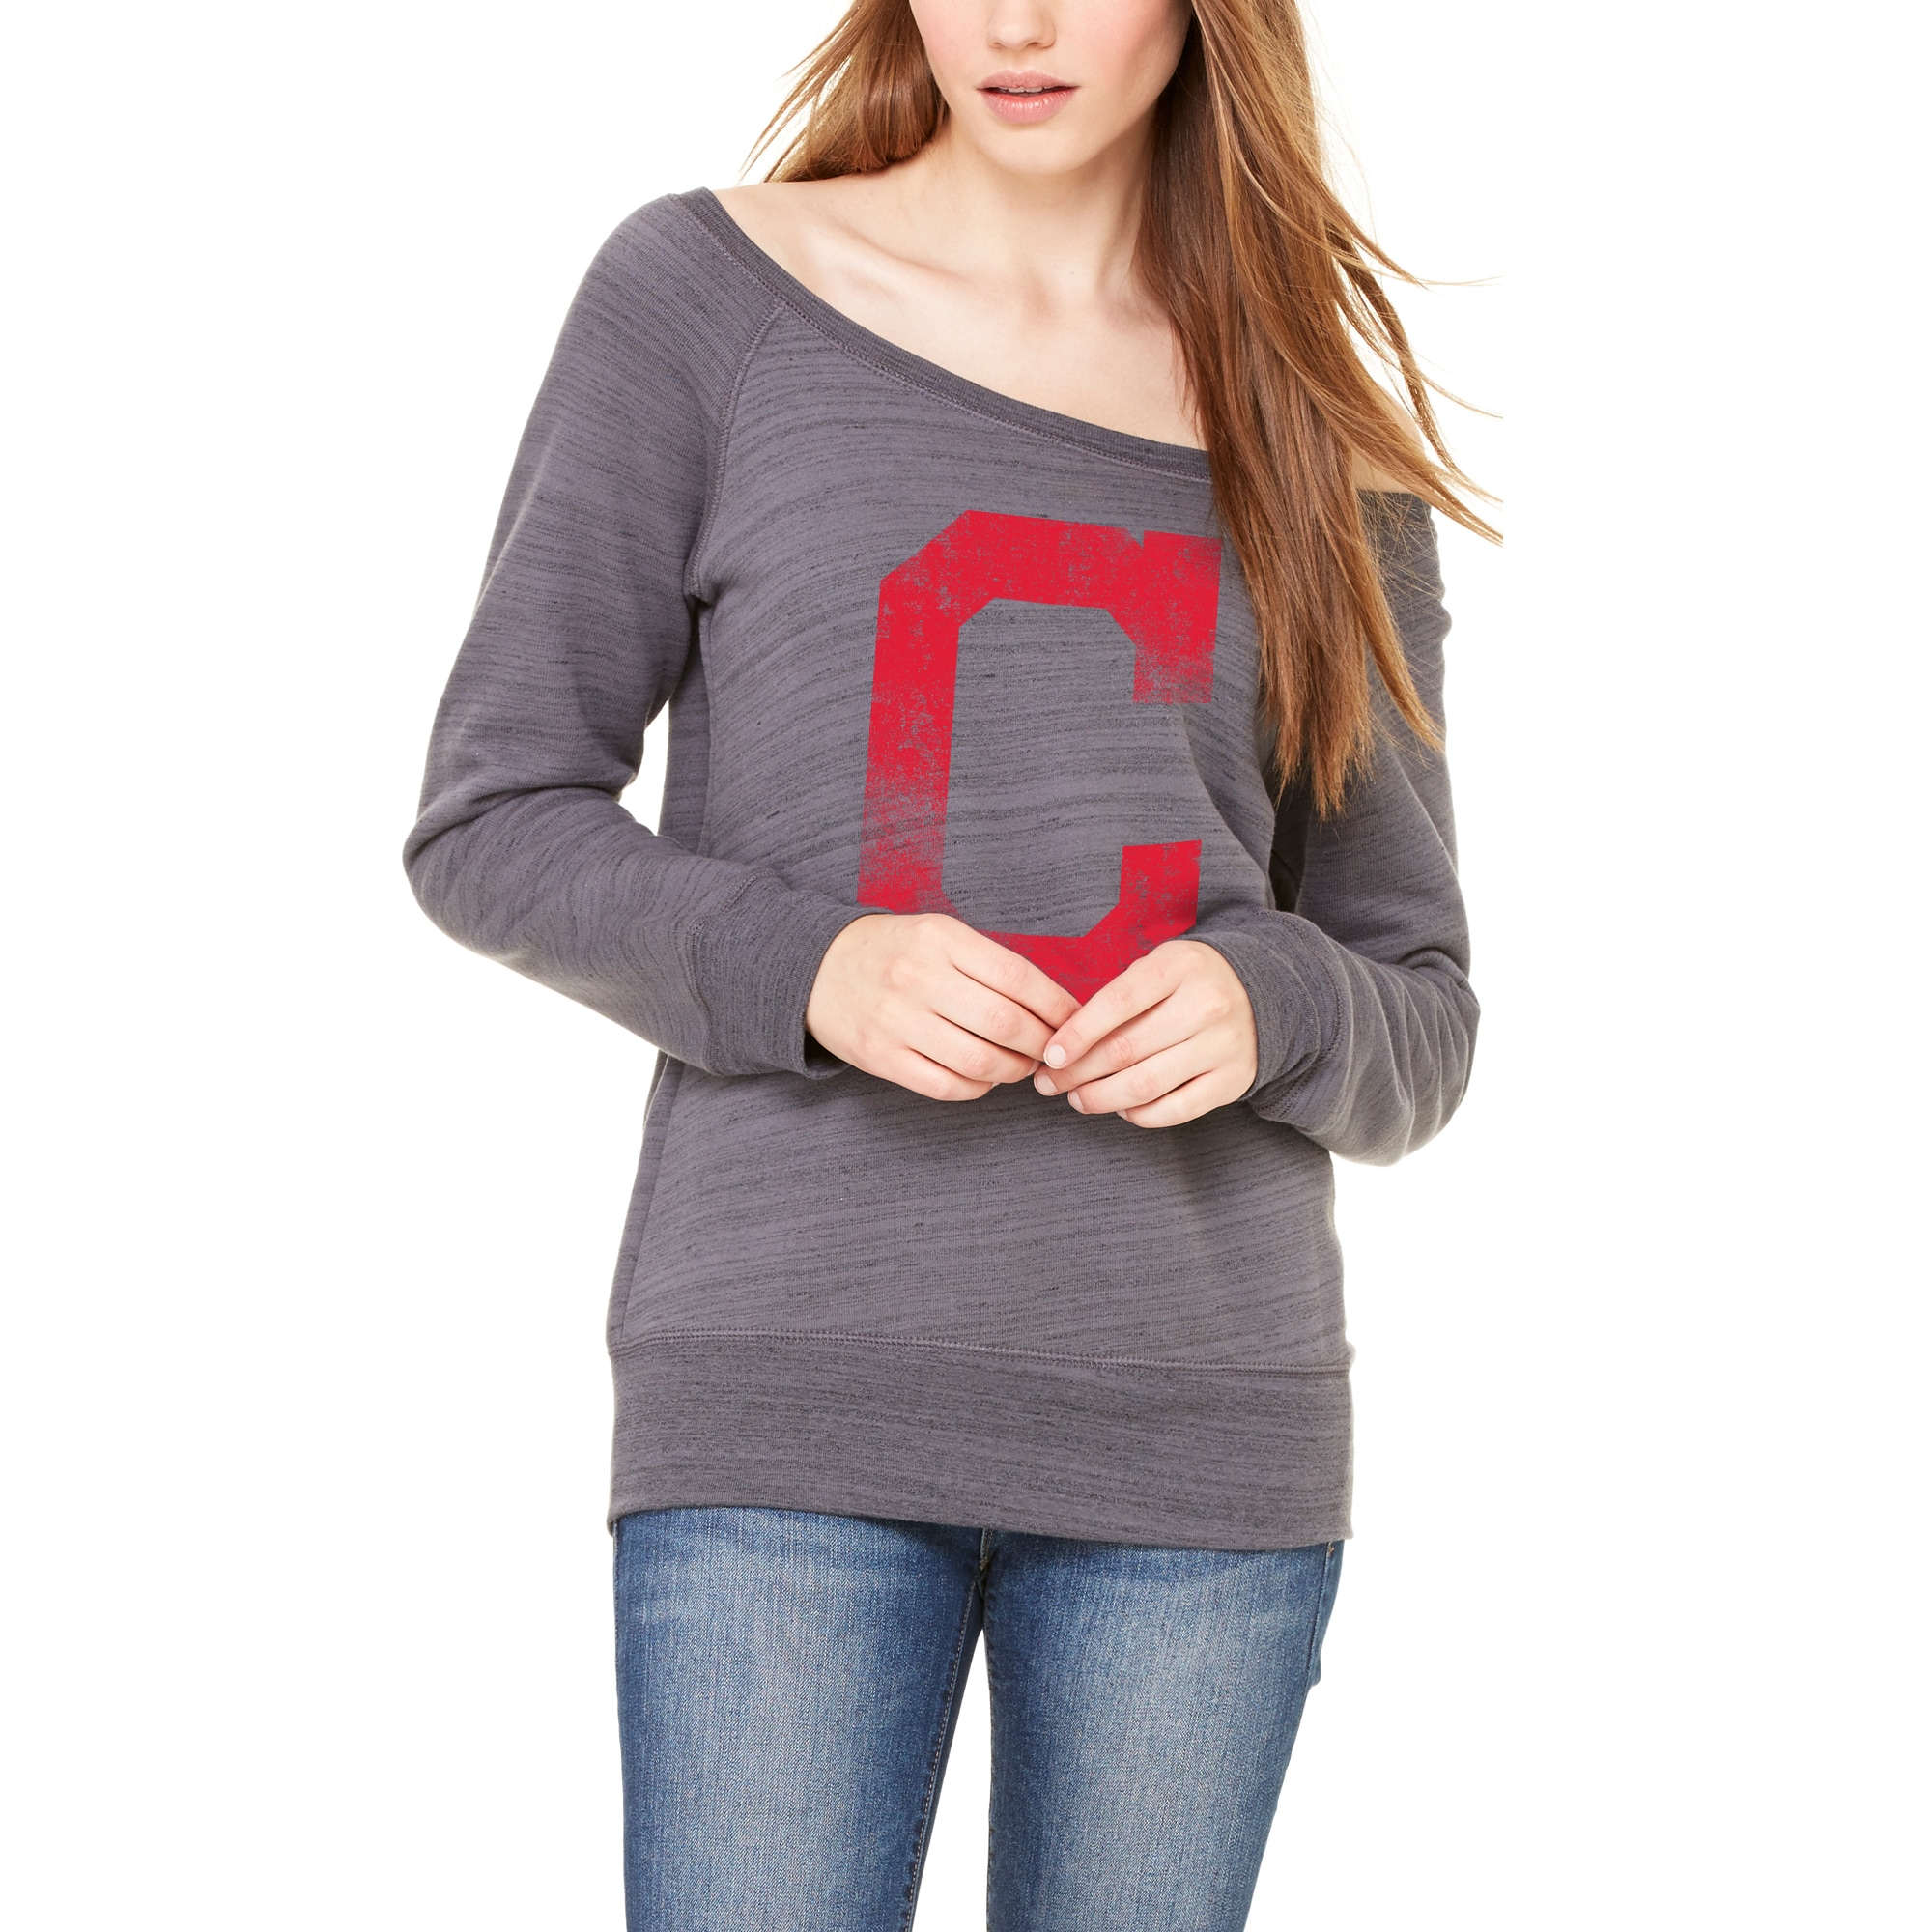 Cleveland Indians Let Loose by RNL Women's Game Day Wide Neck Sweatshirt - Dark Gray Marble